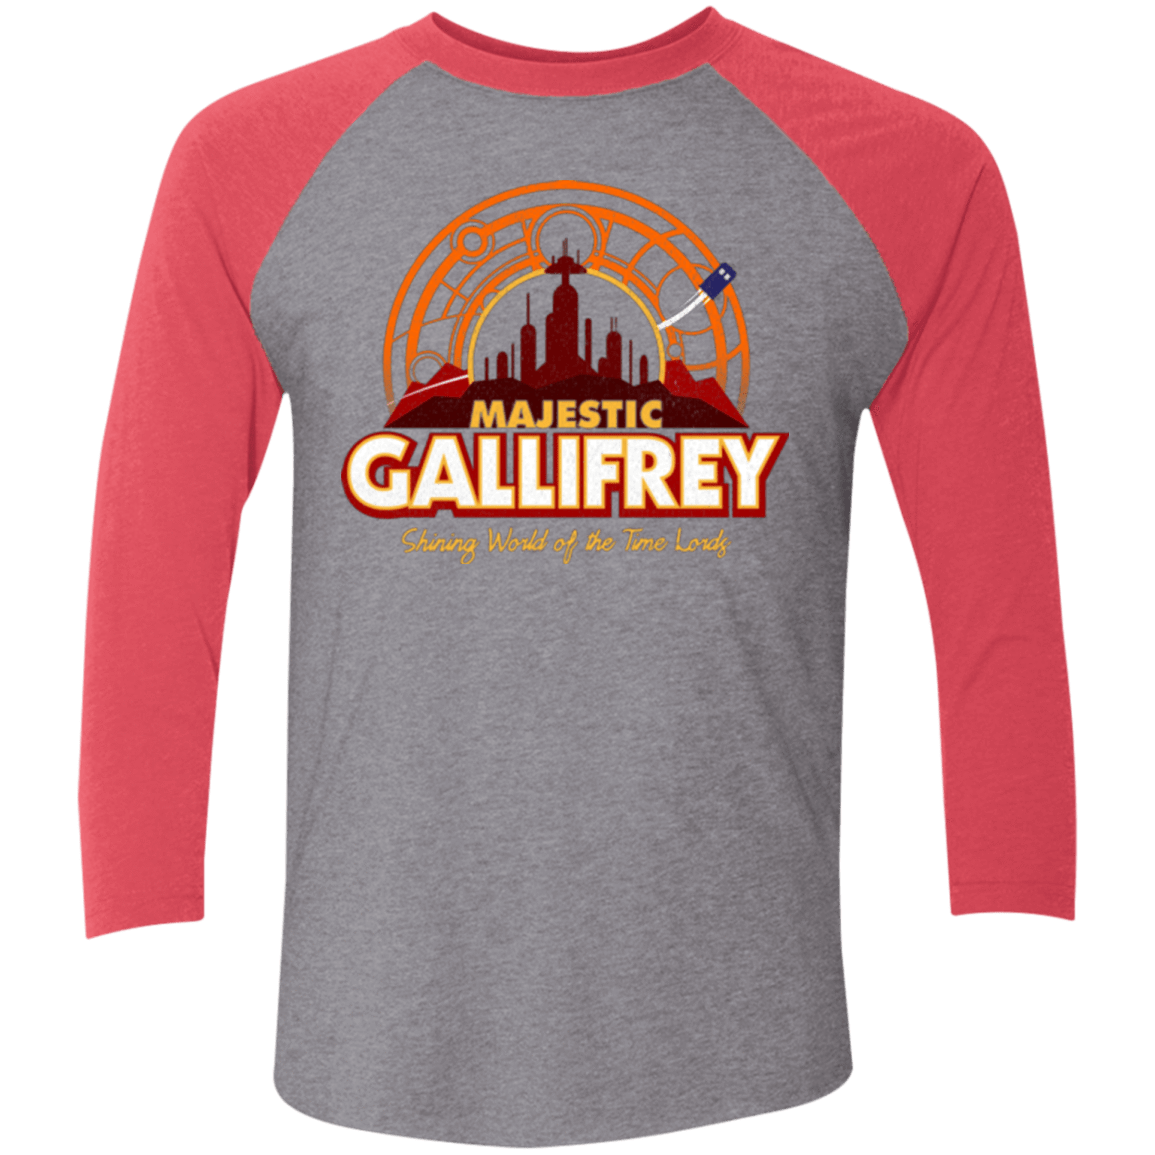 T-Shirts Premium Heather/ Vintage Red / X-Small Majestic Gallifrey Triblend 3/4 Sleeve